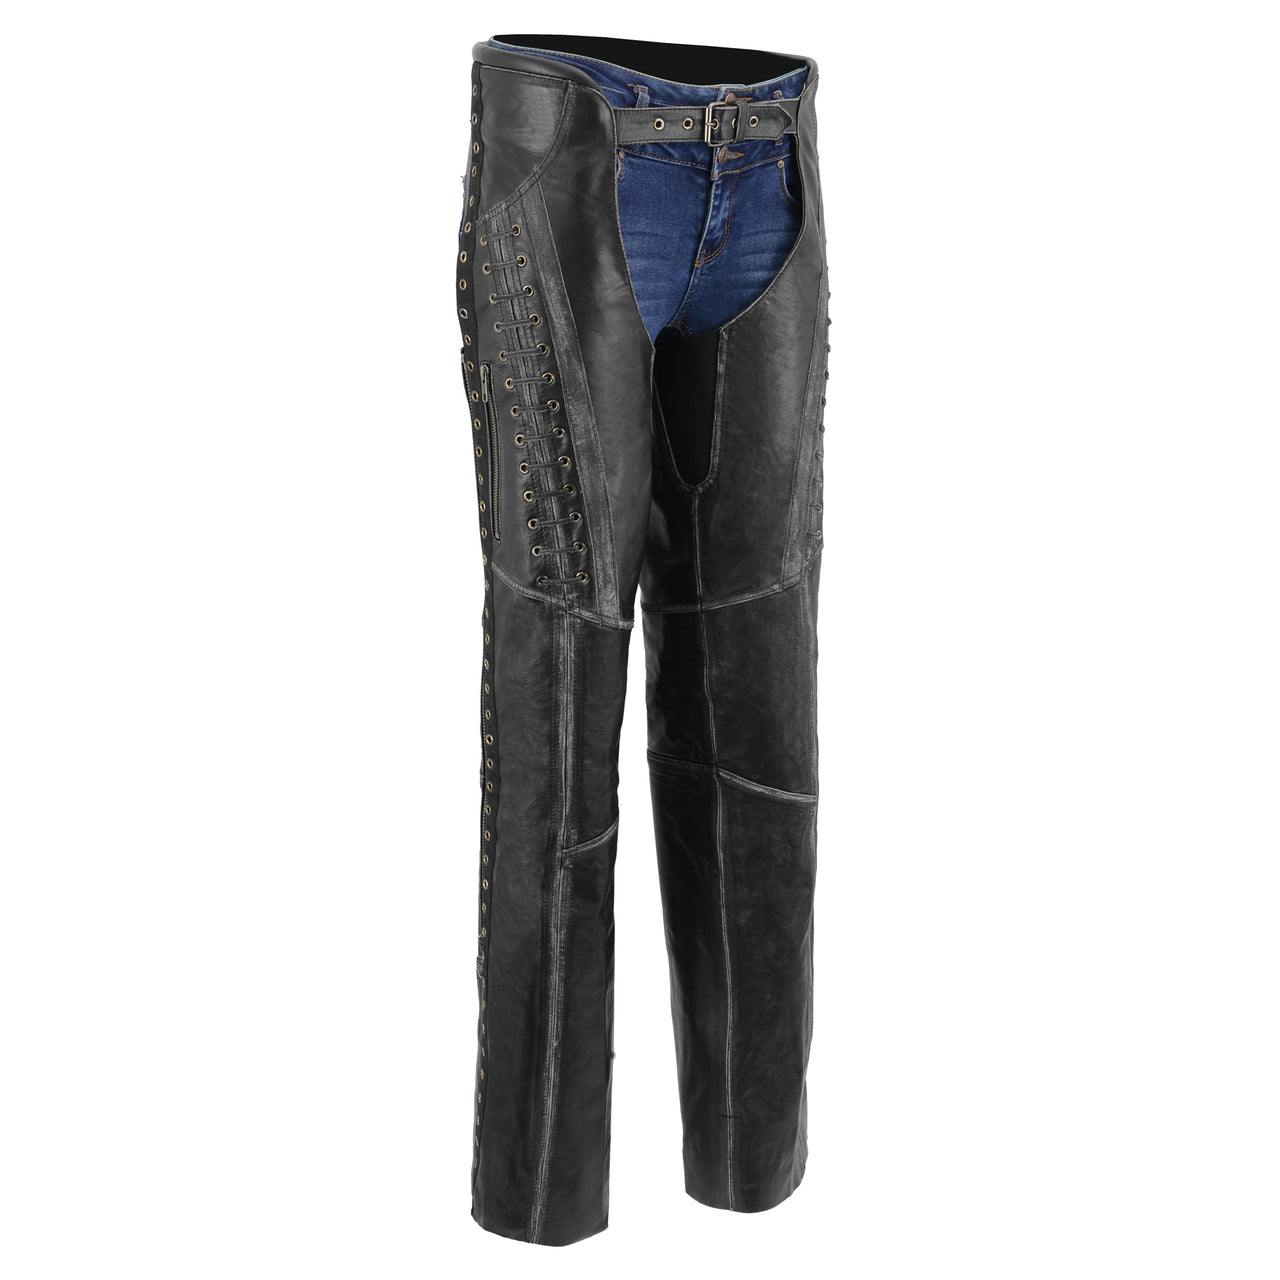 Women Distressed Black Beltless Leather Chaps  with Lace - HighwayLeather